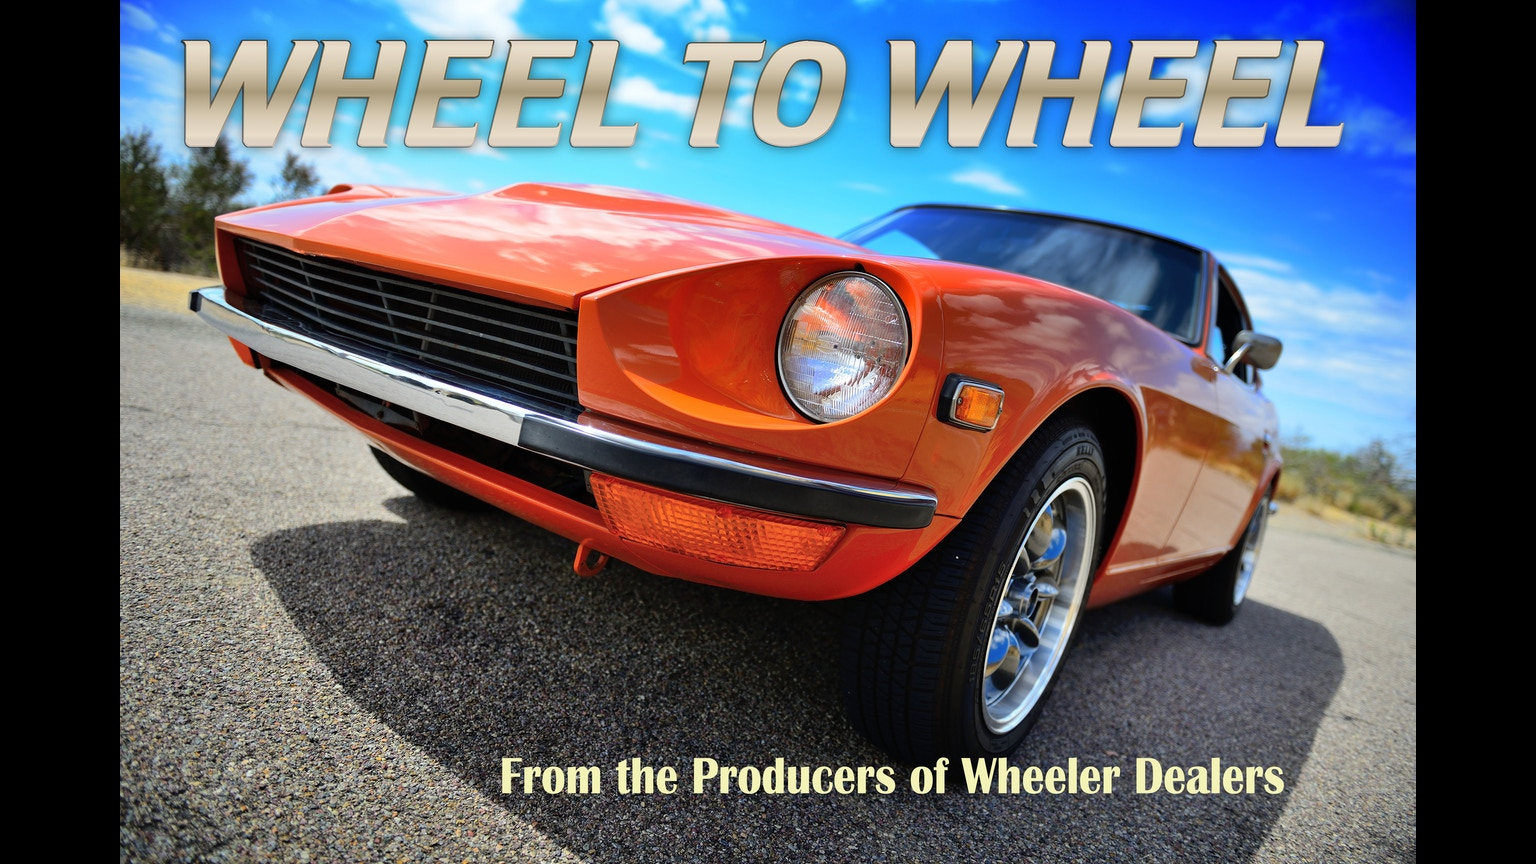 Car Restoration Tv Shows >> Wheel to Wheel - Car Restoration TV Series by Andrew Shaw